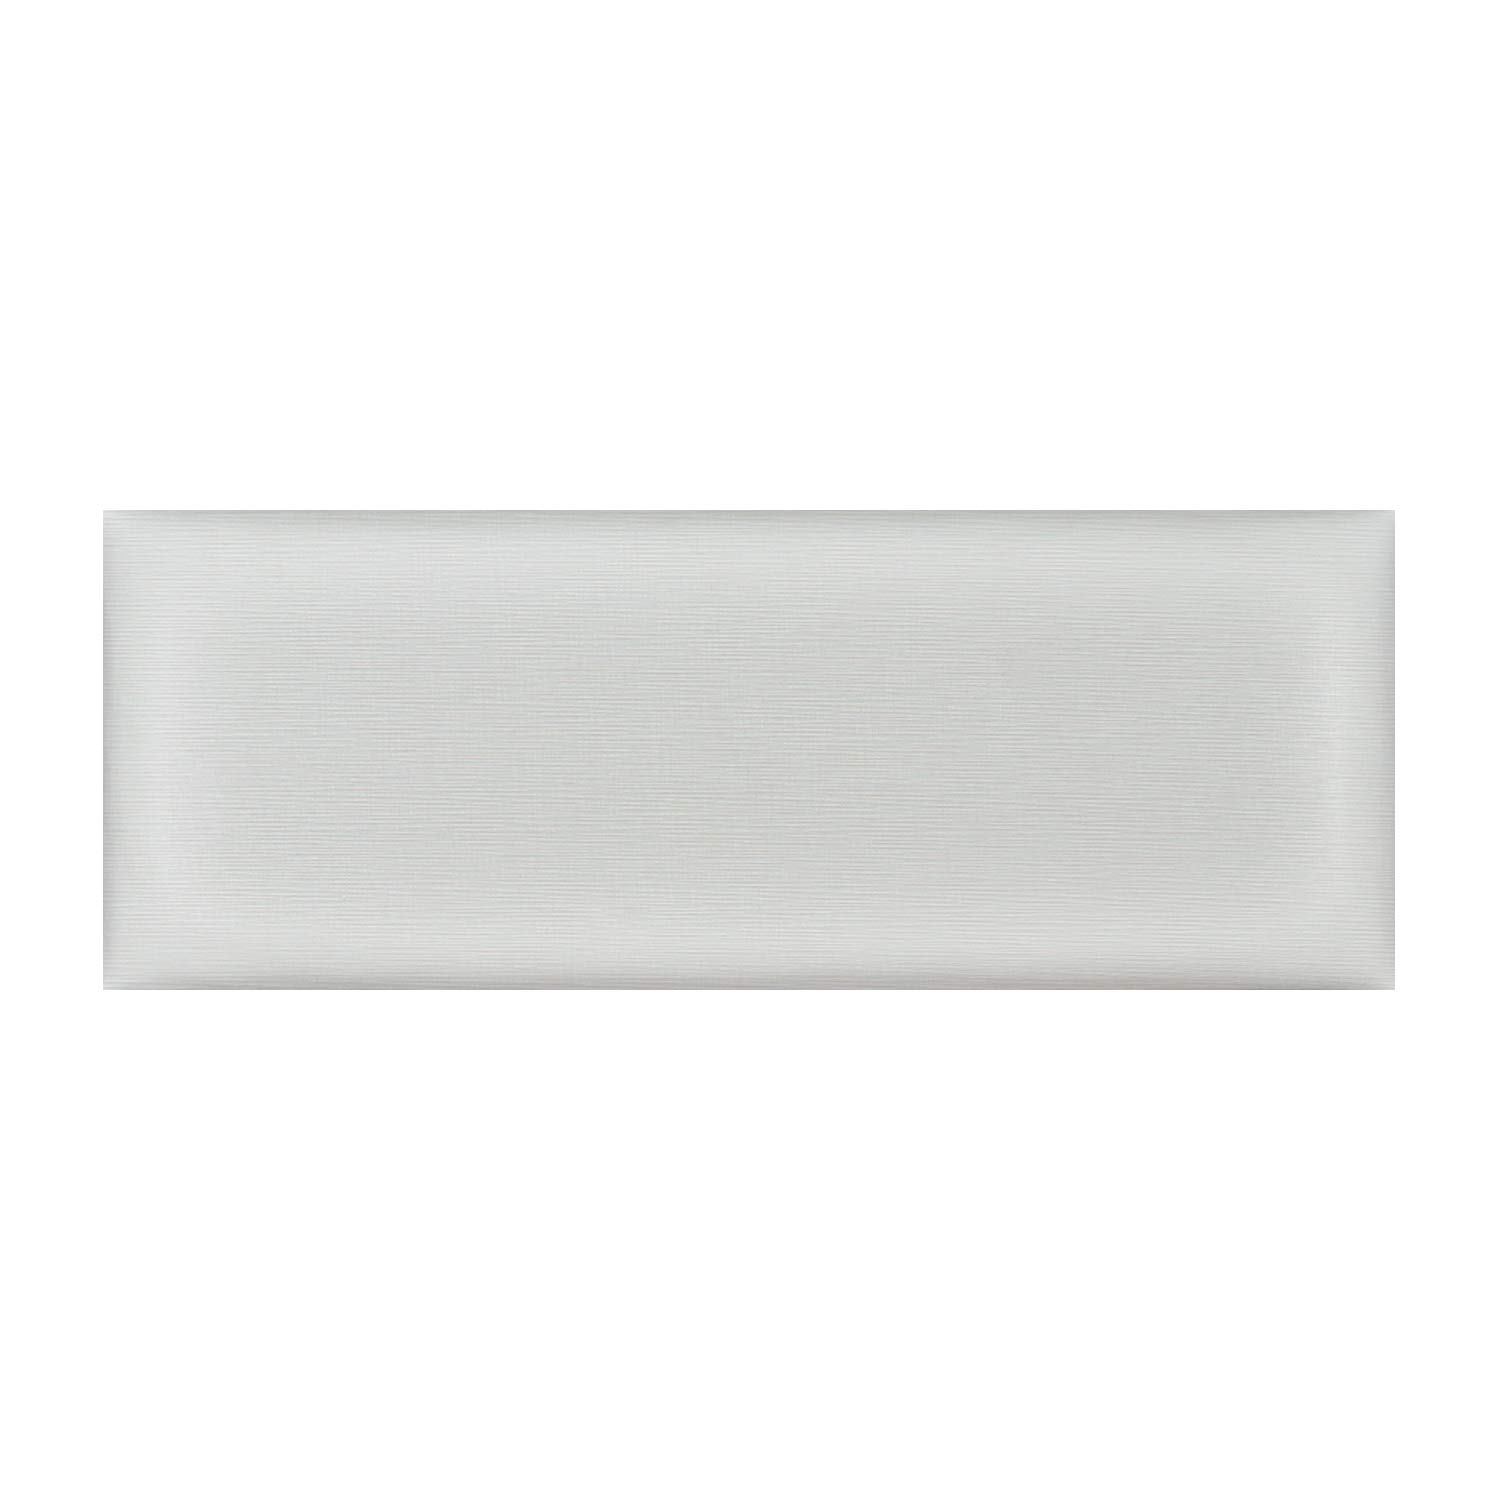 Upholstered Headboard King - Set of 8 panels Removable Accent Leather Wall Panels - White 39.4